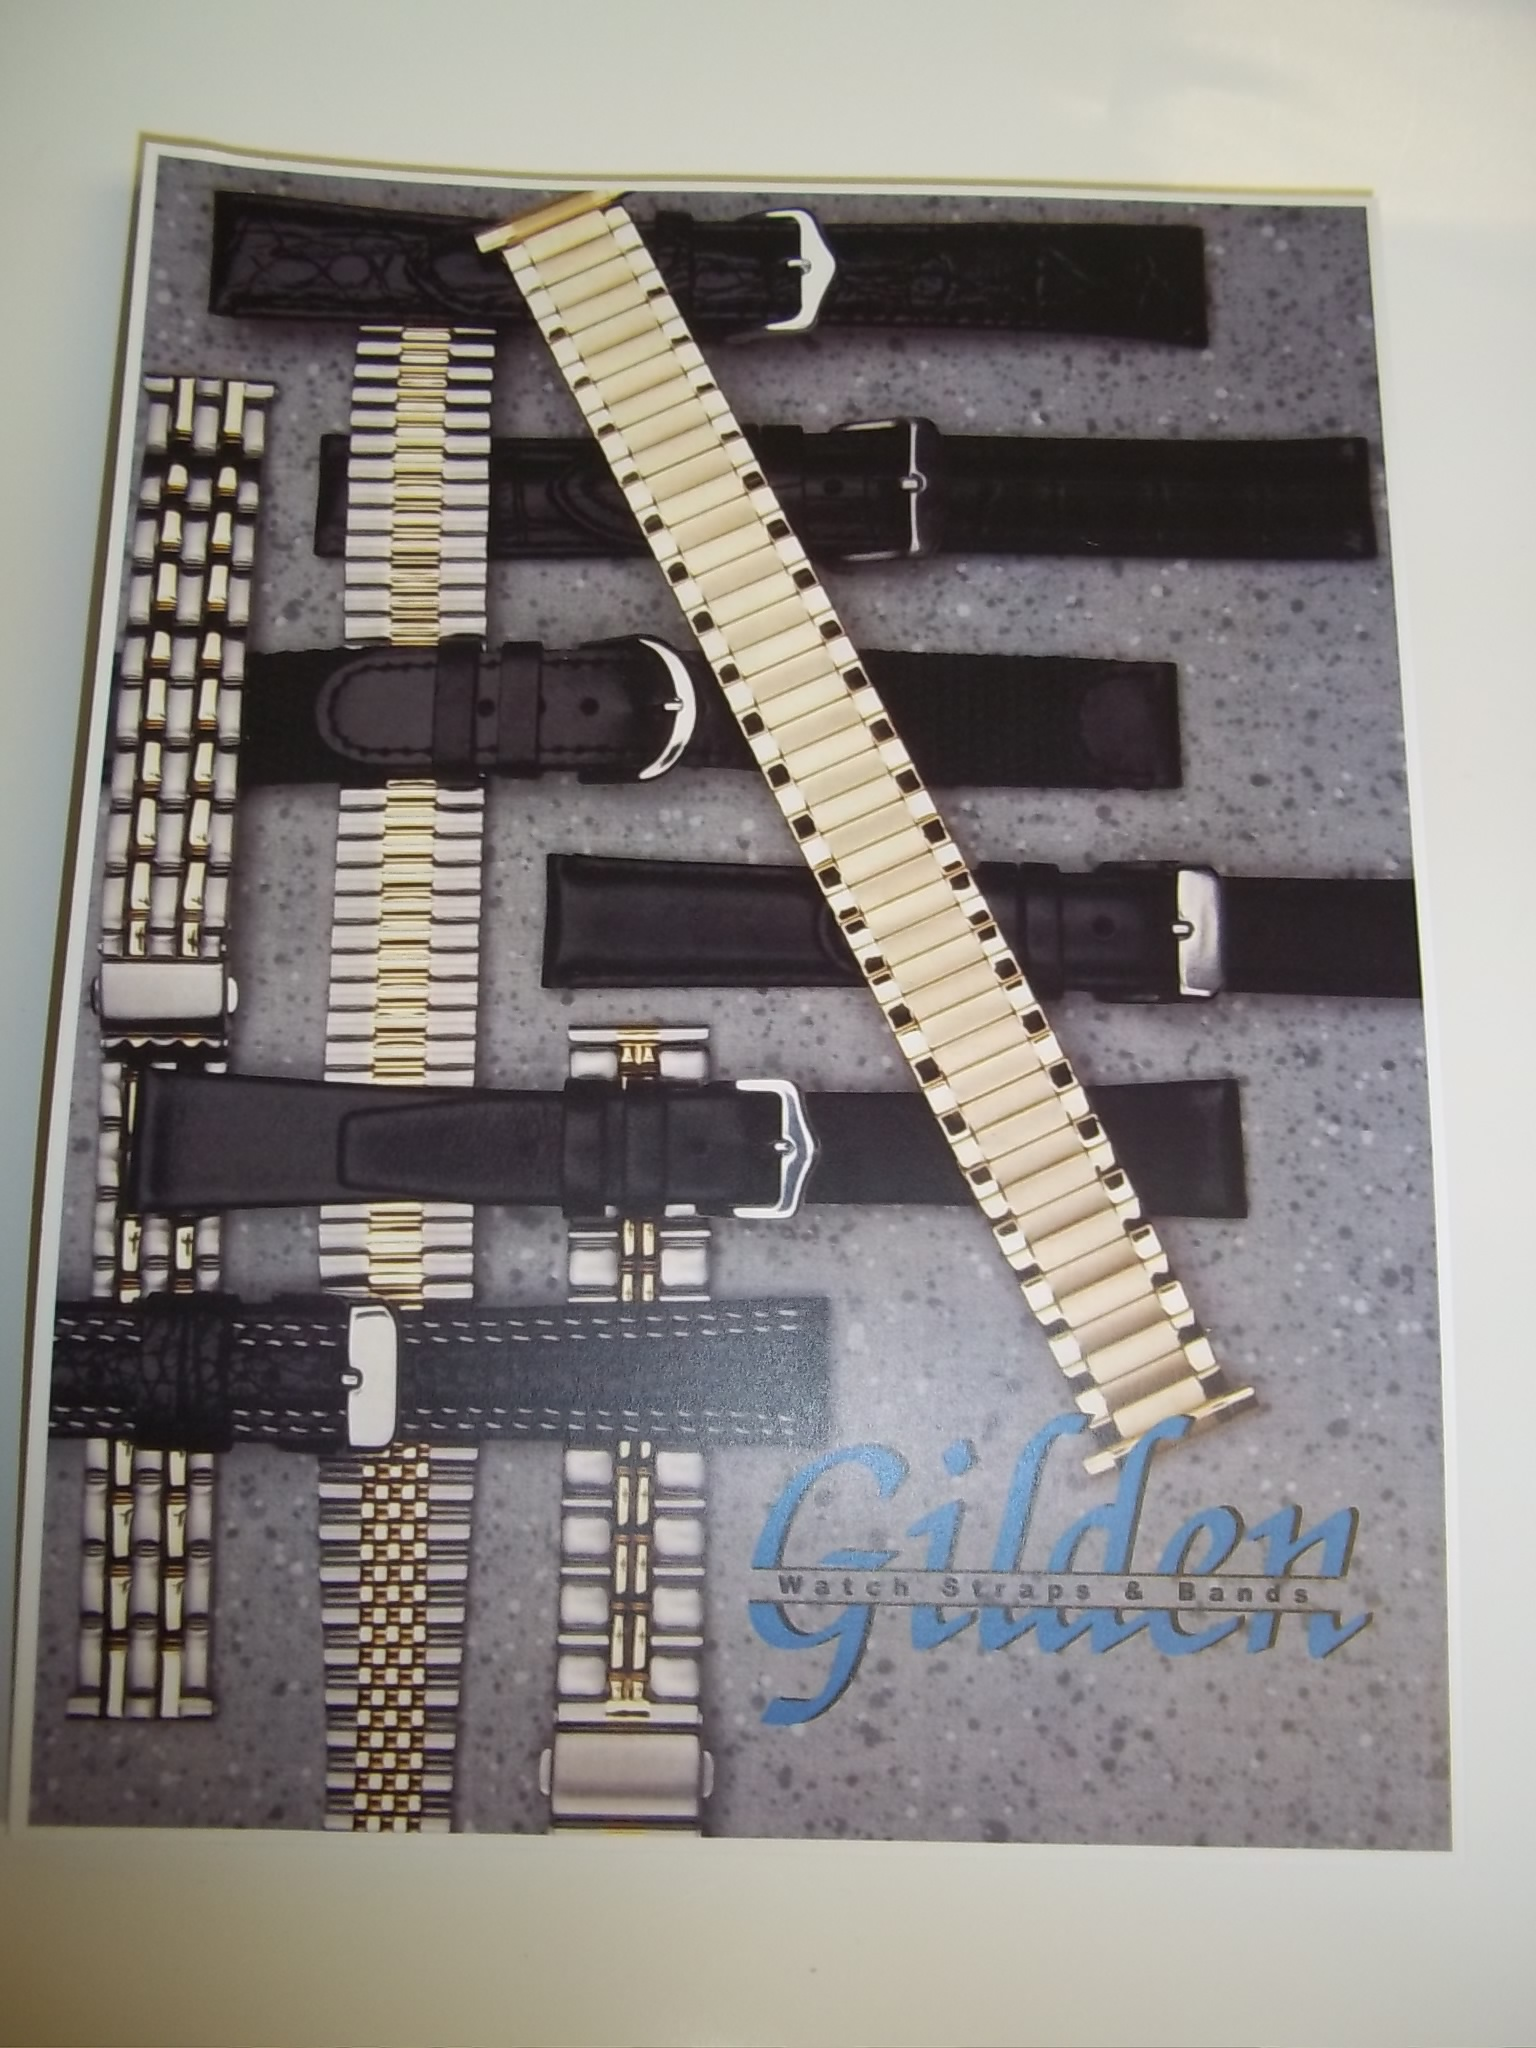 CAT Gilden Watch Straps & Bands